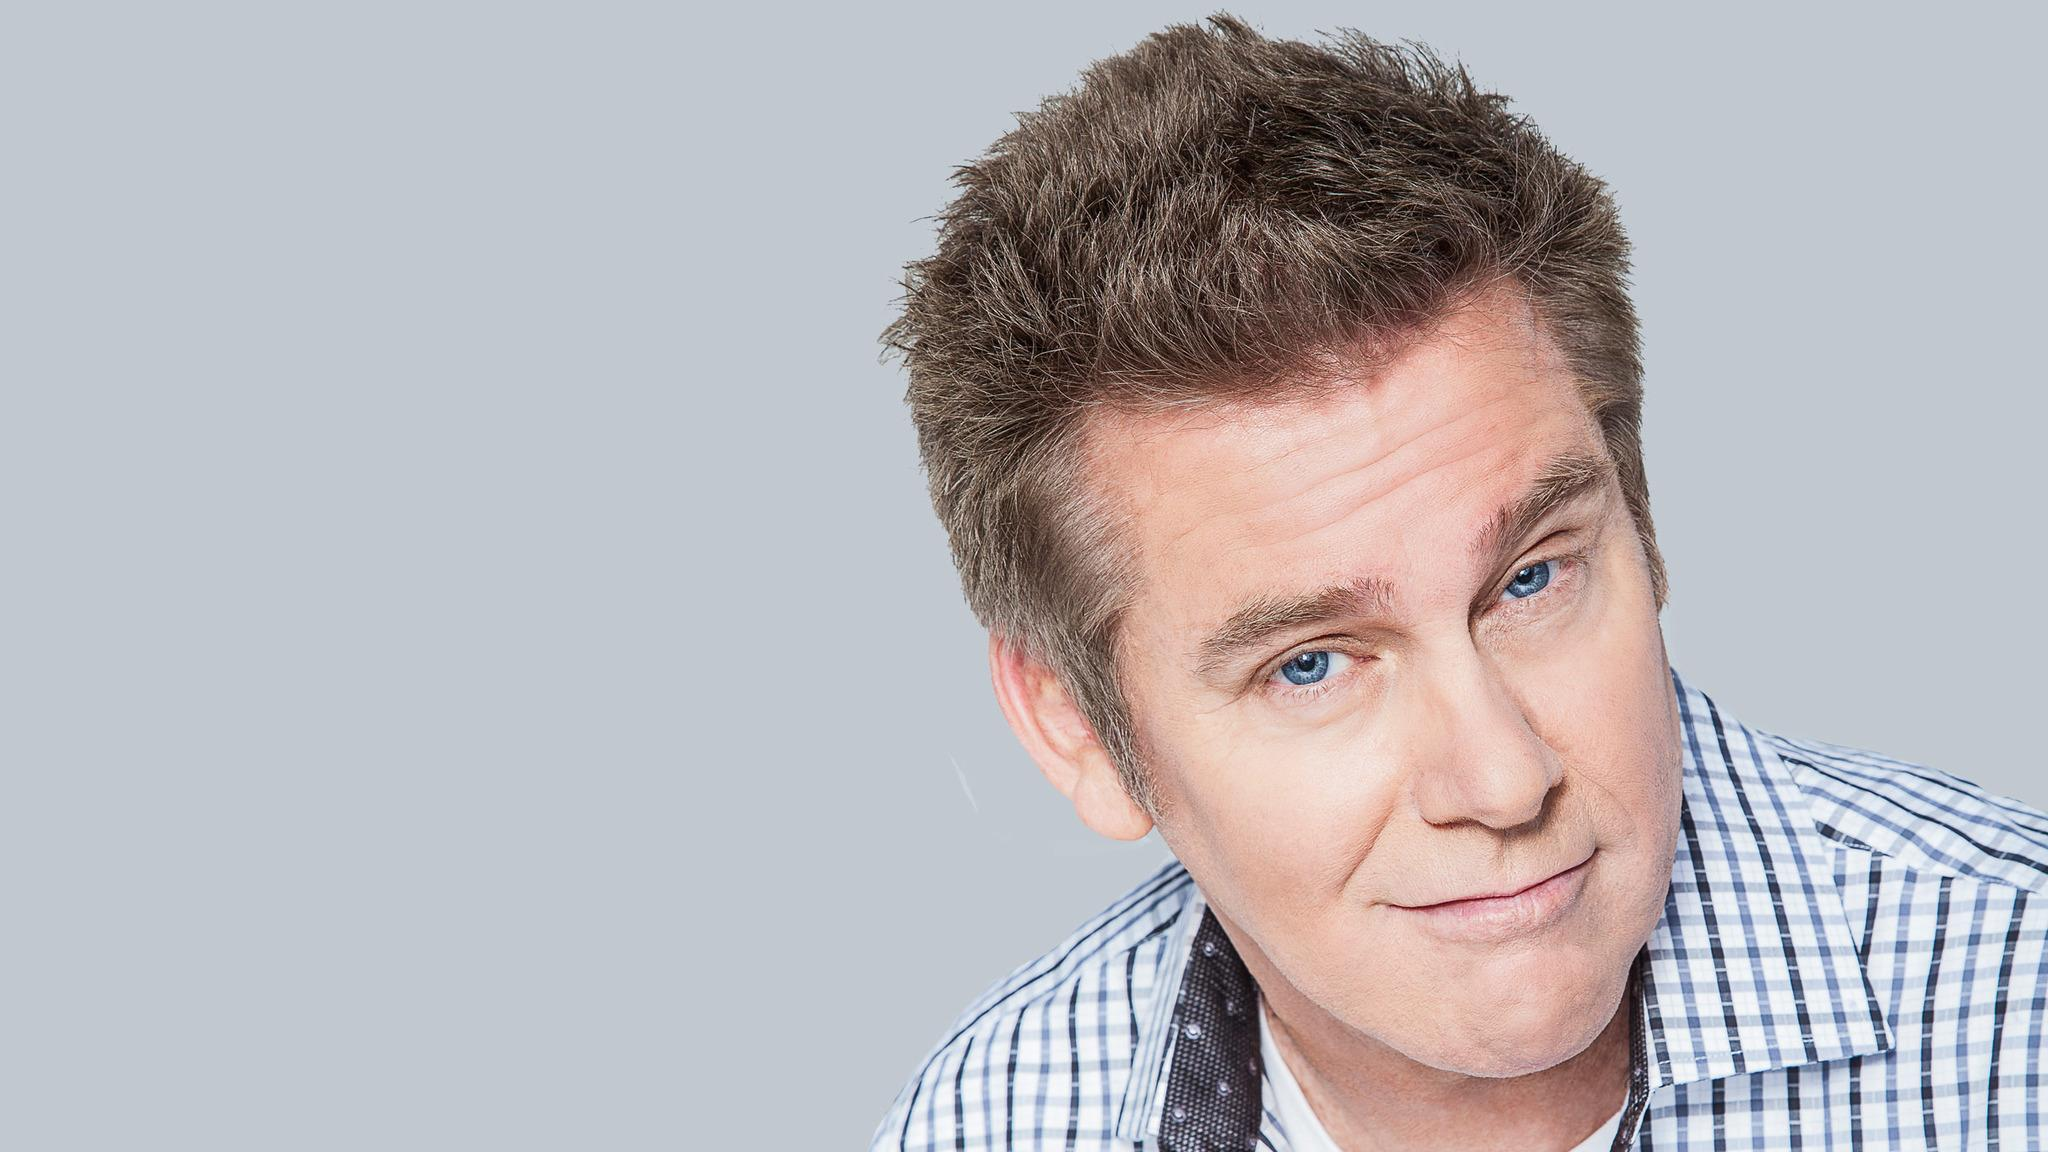 Brian Regan at Ruth Eckerd Hall